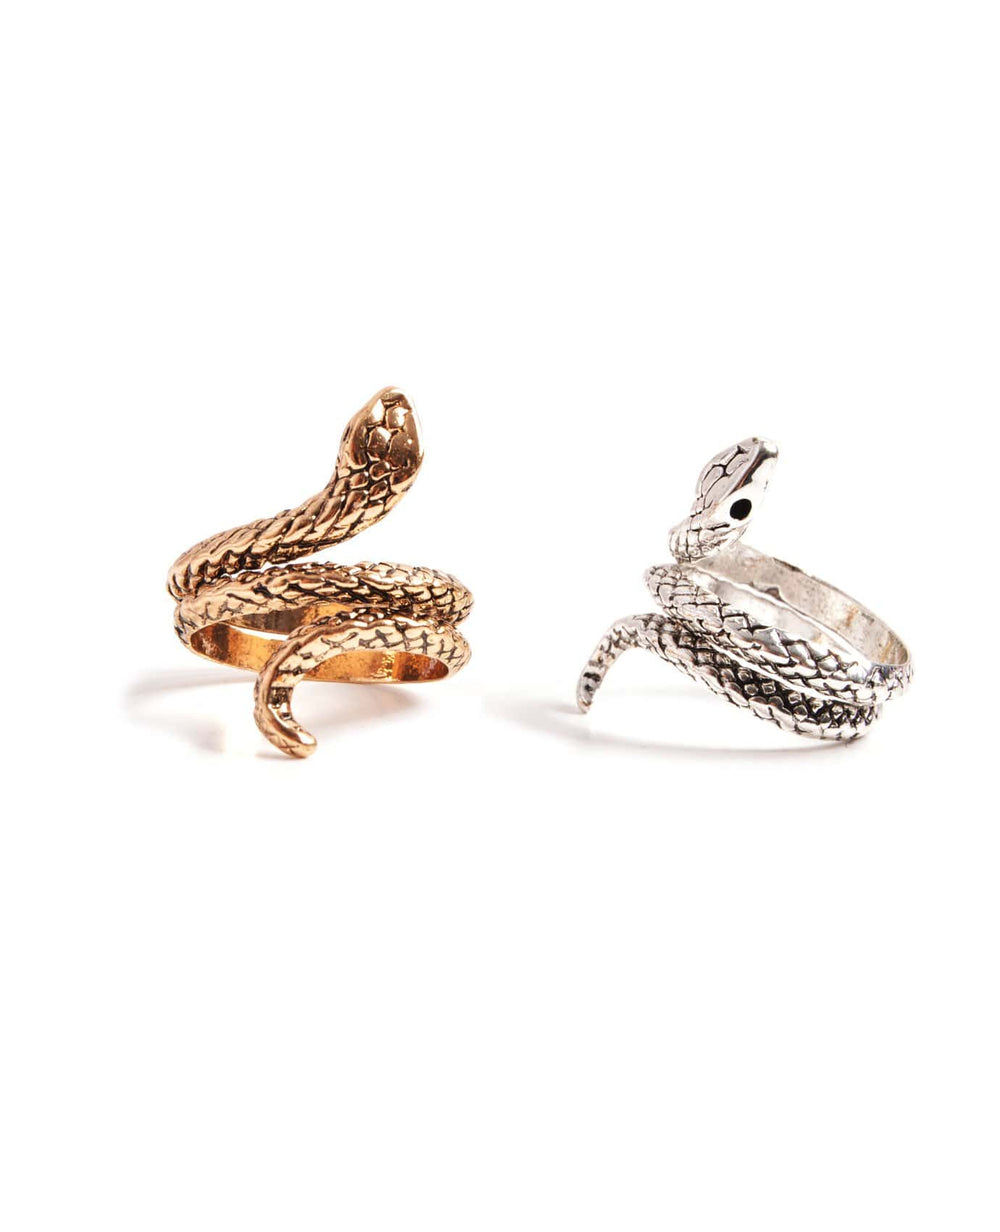 Sexy Serpent Ring